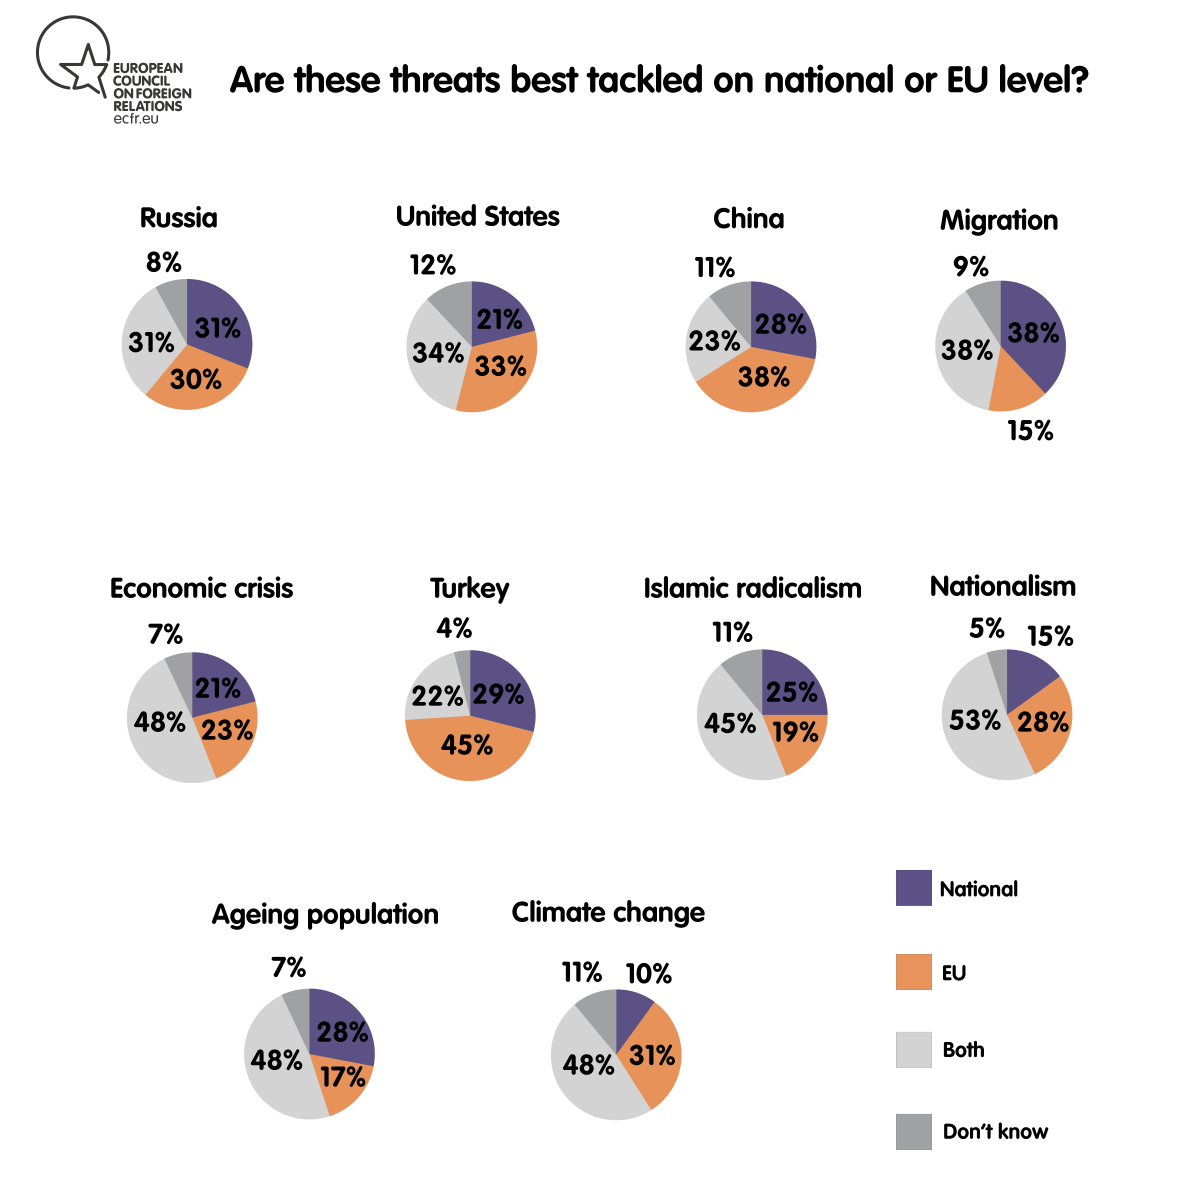 Are these threats best tackled on national or EU level?